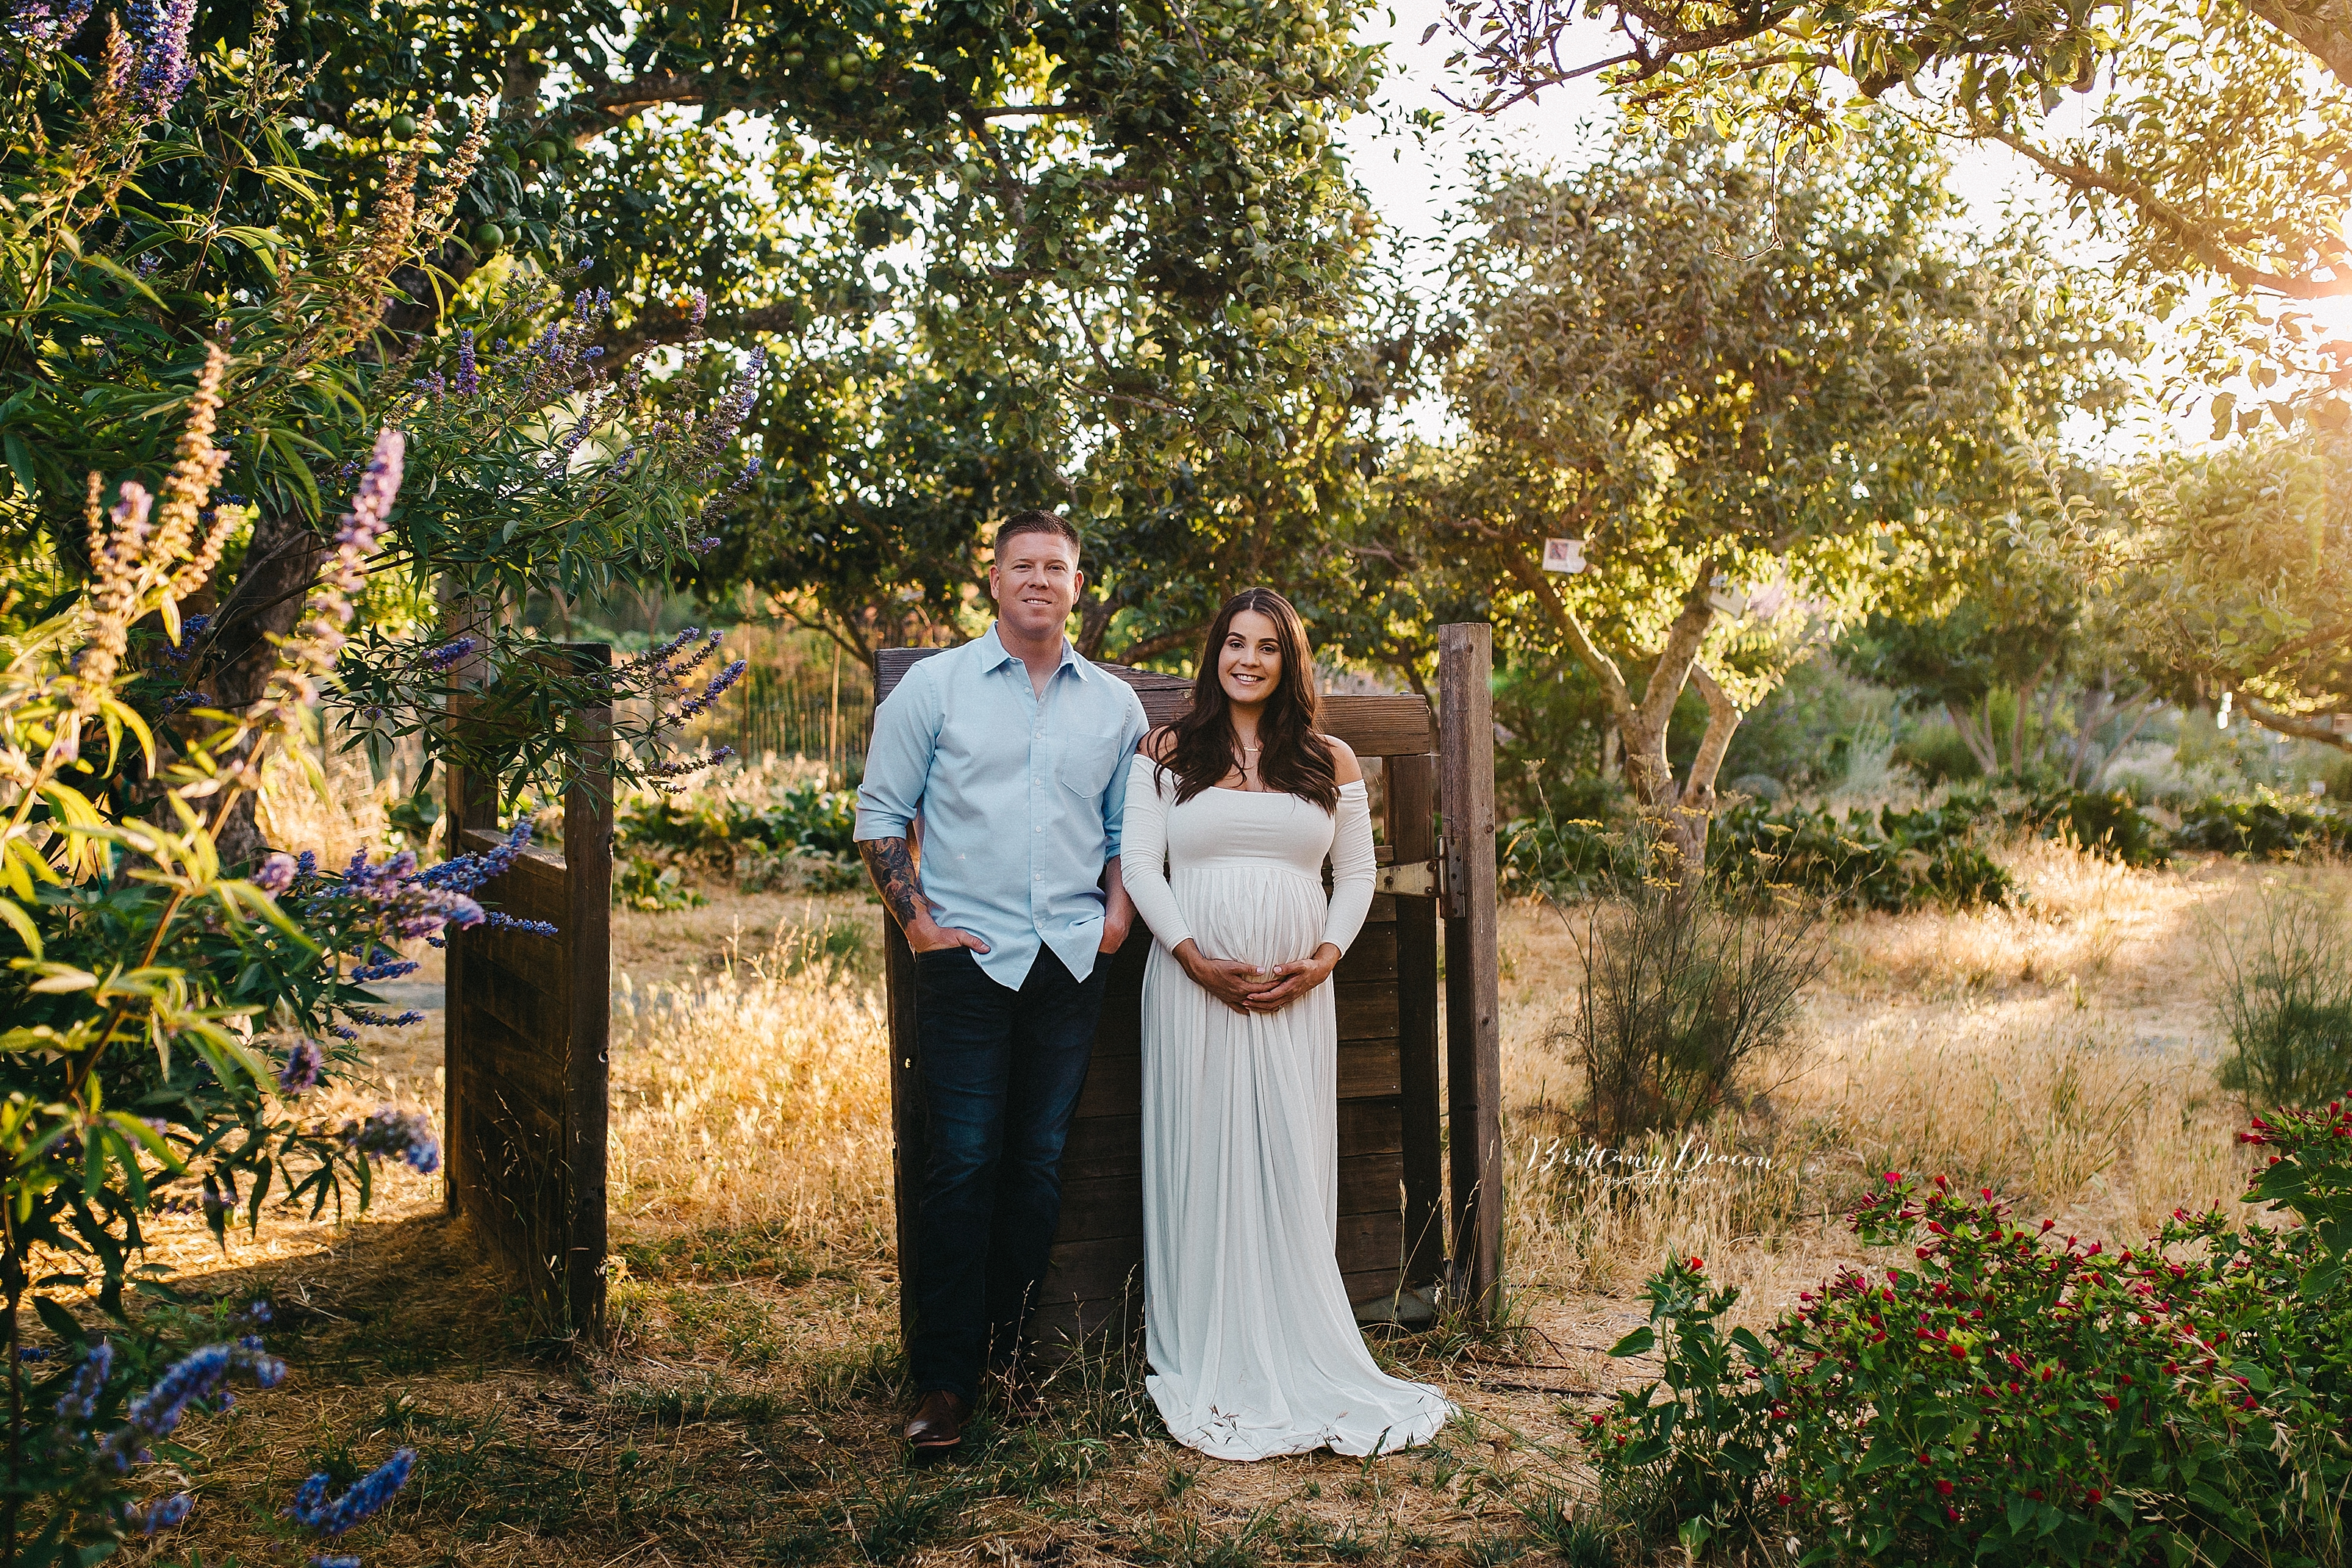 Kristi-and-Travis-Maternity-Session-Lafayette-Pleasanton-San-Ramon-Newborn-Family-Photographer-Britt